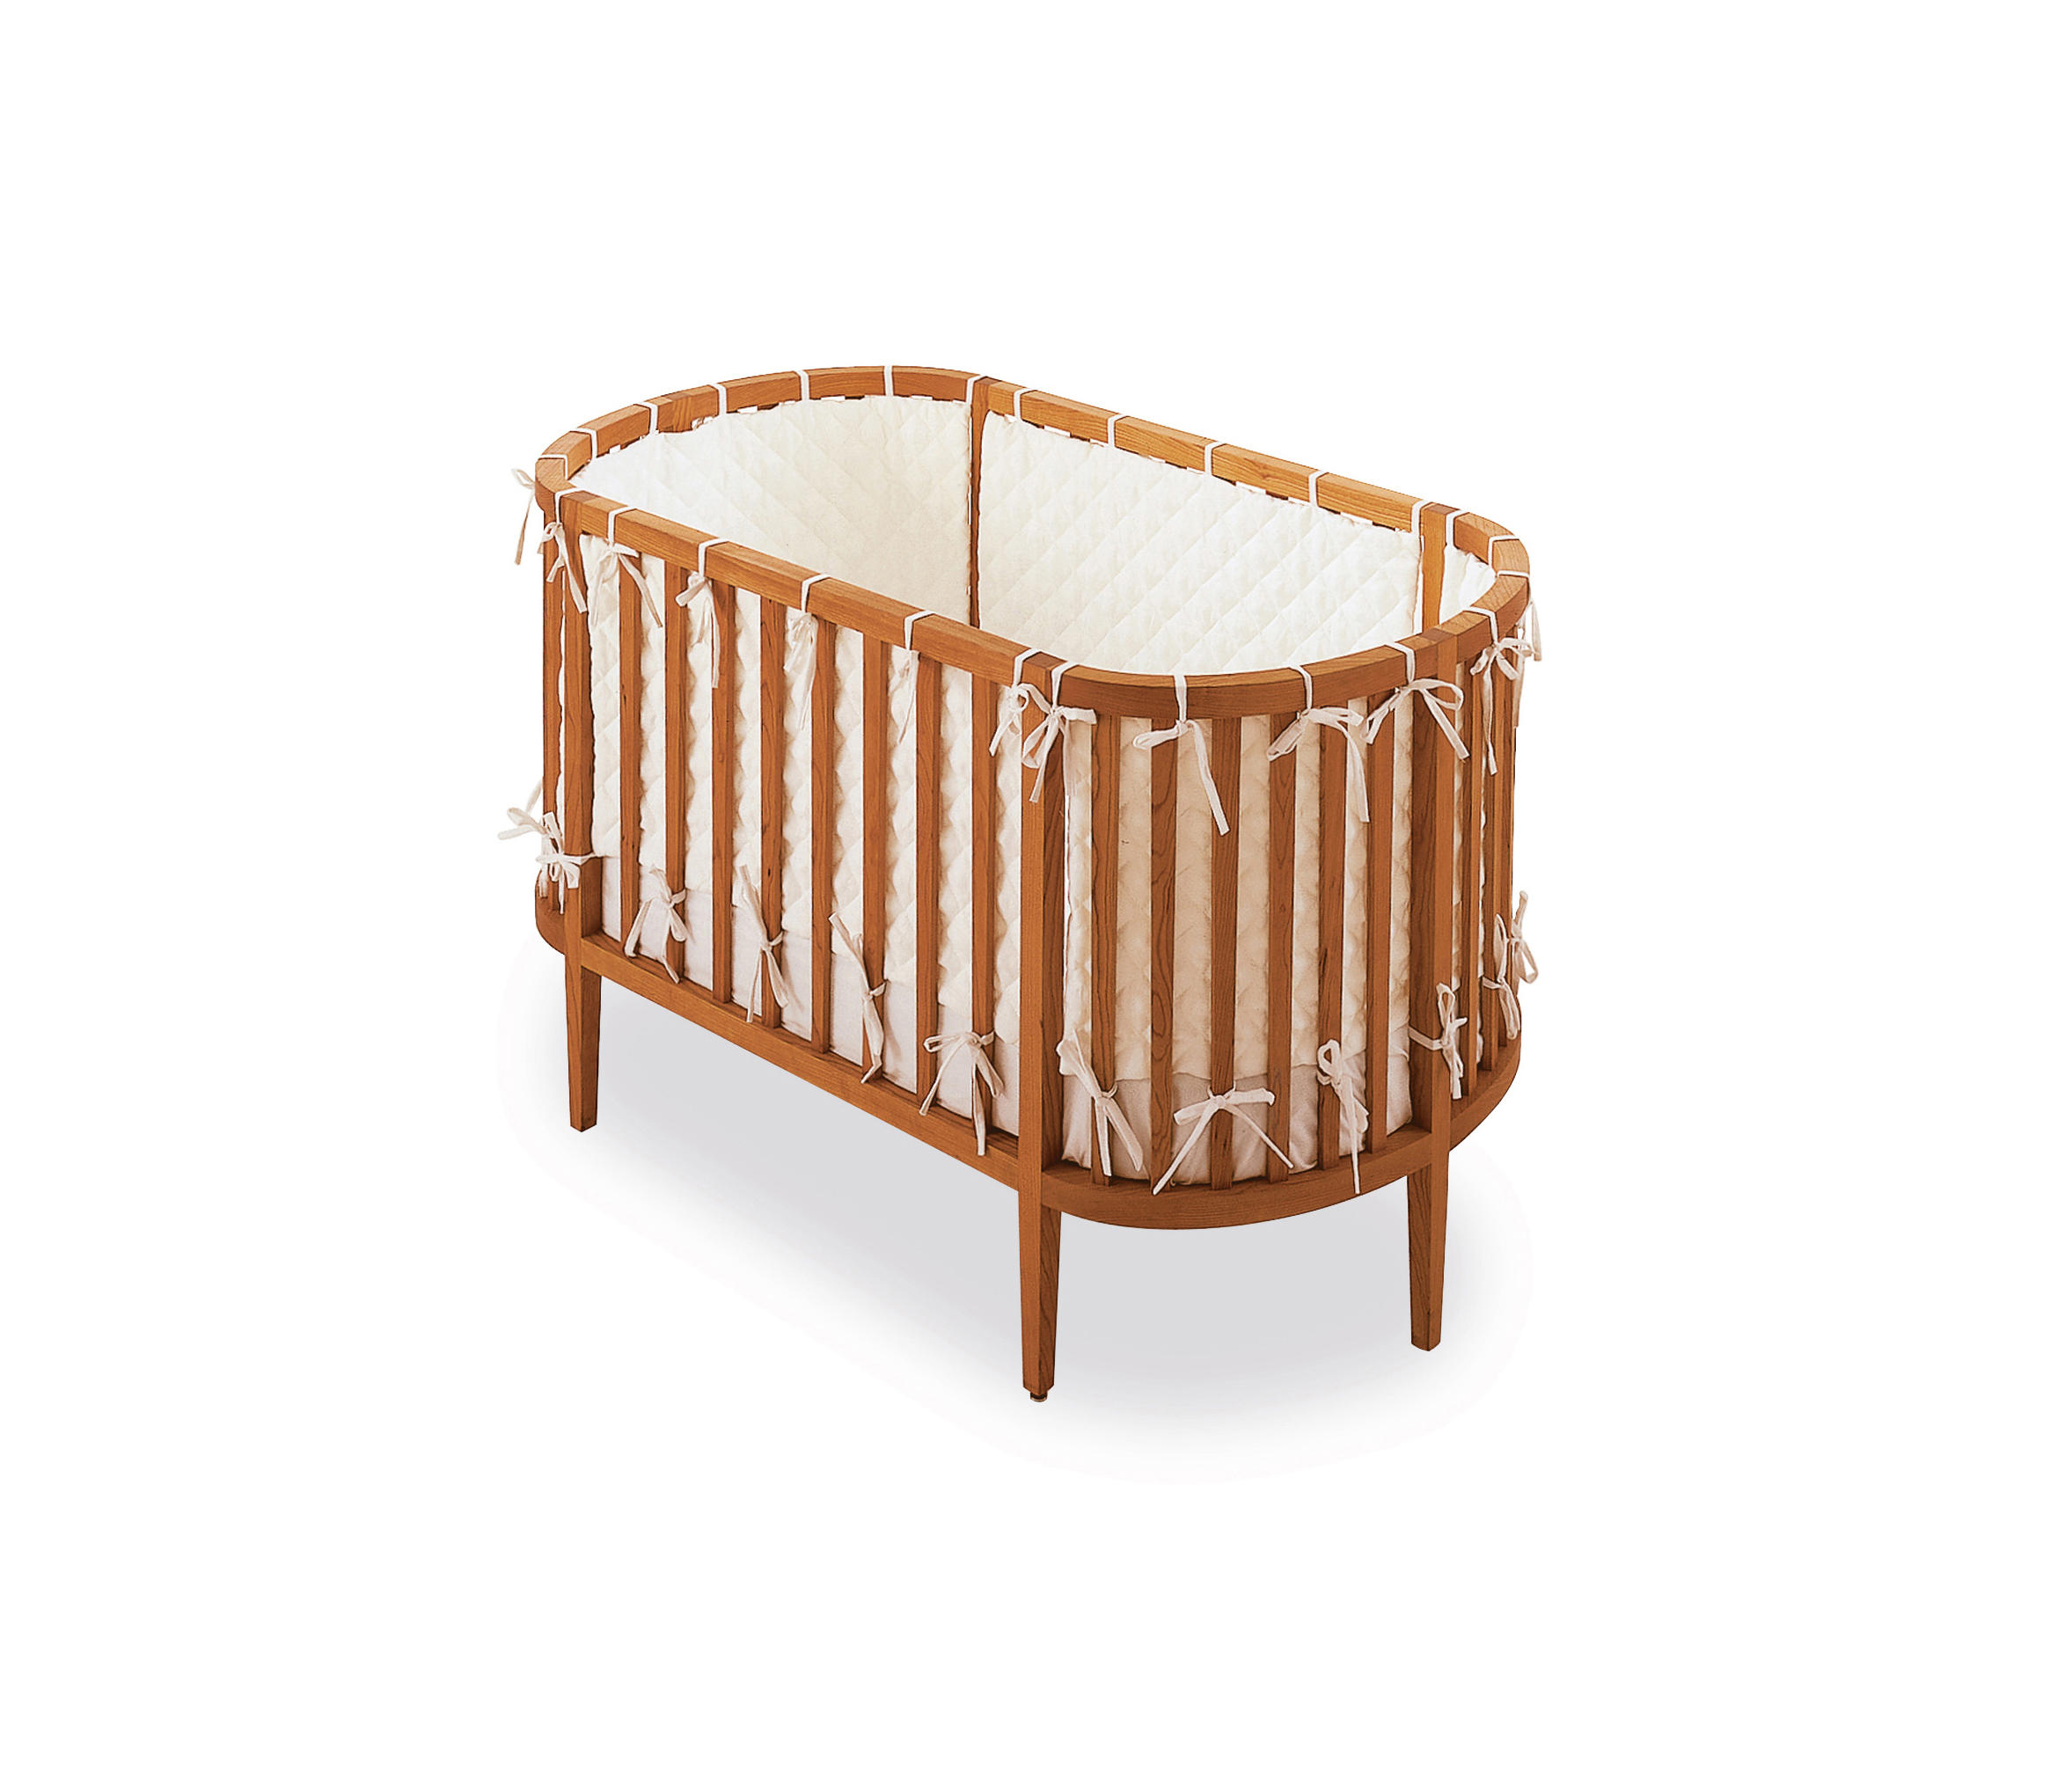 Bloomington Infant S Beds From Riva 1920 Architonic # Muebles Riflessi